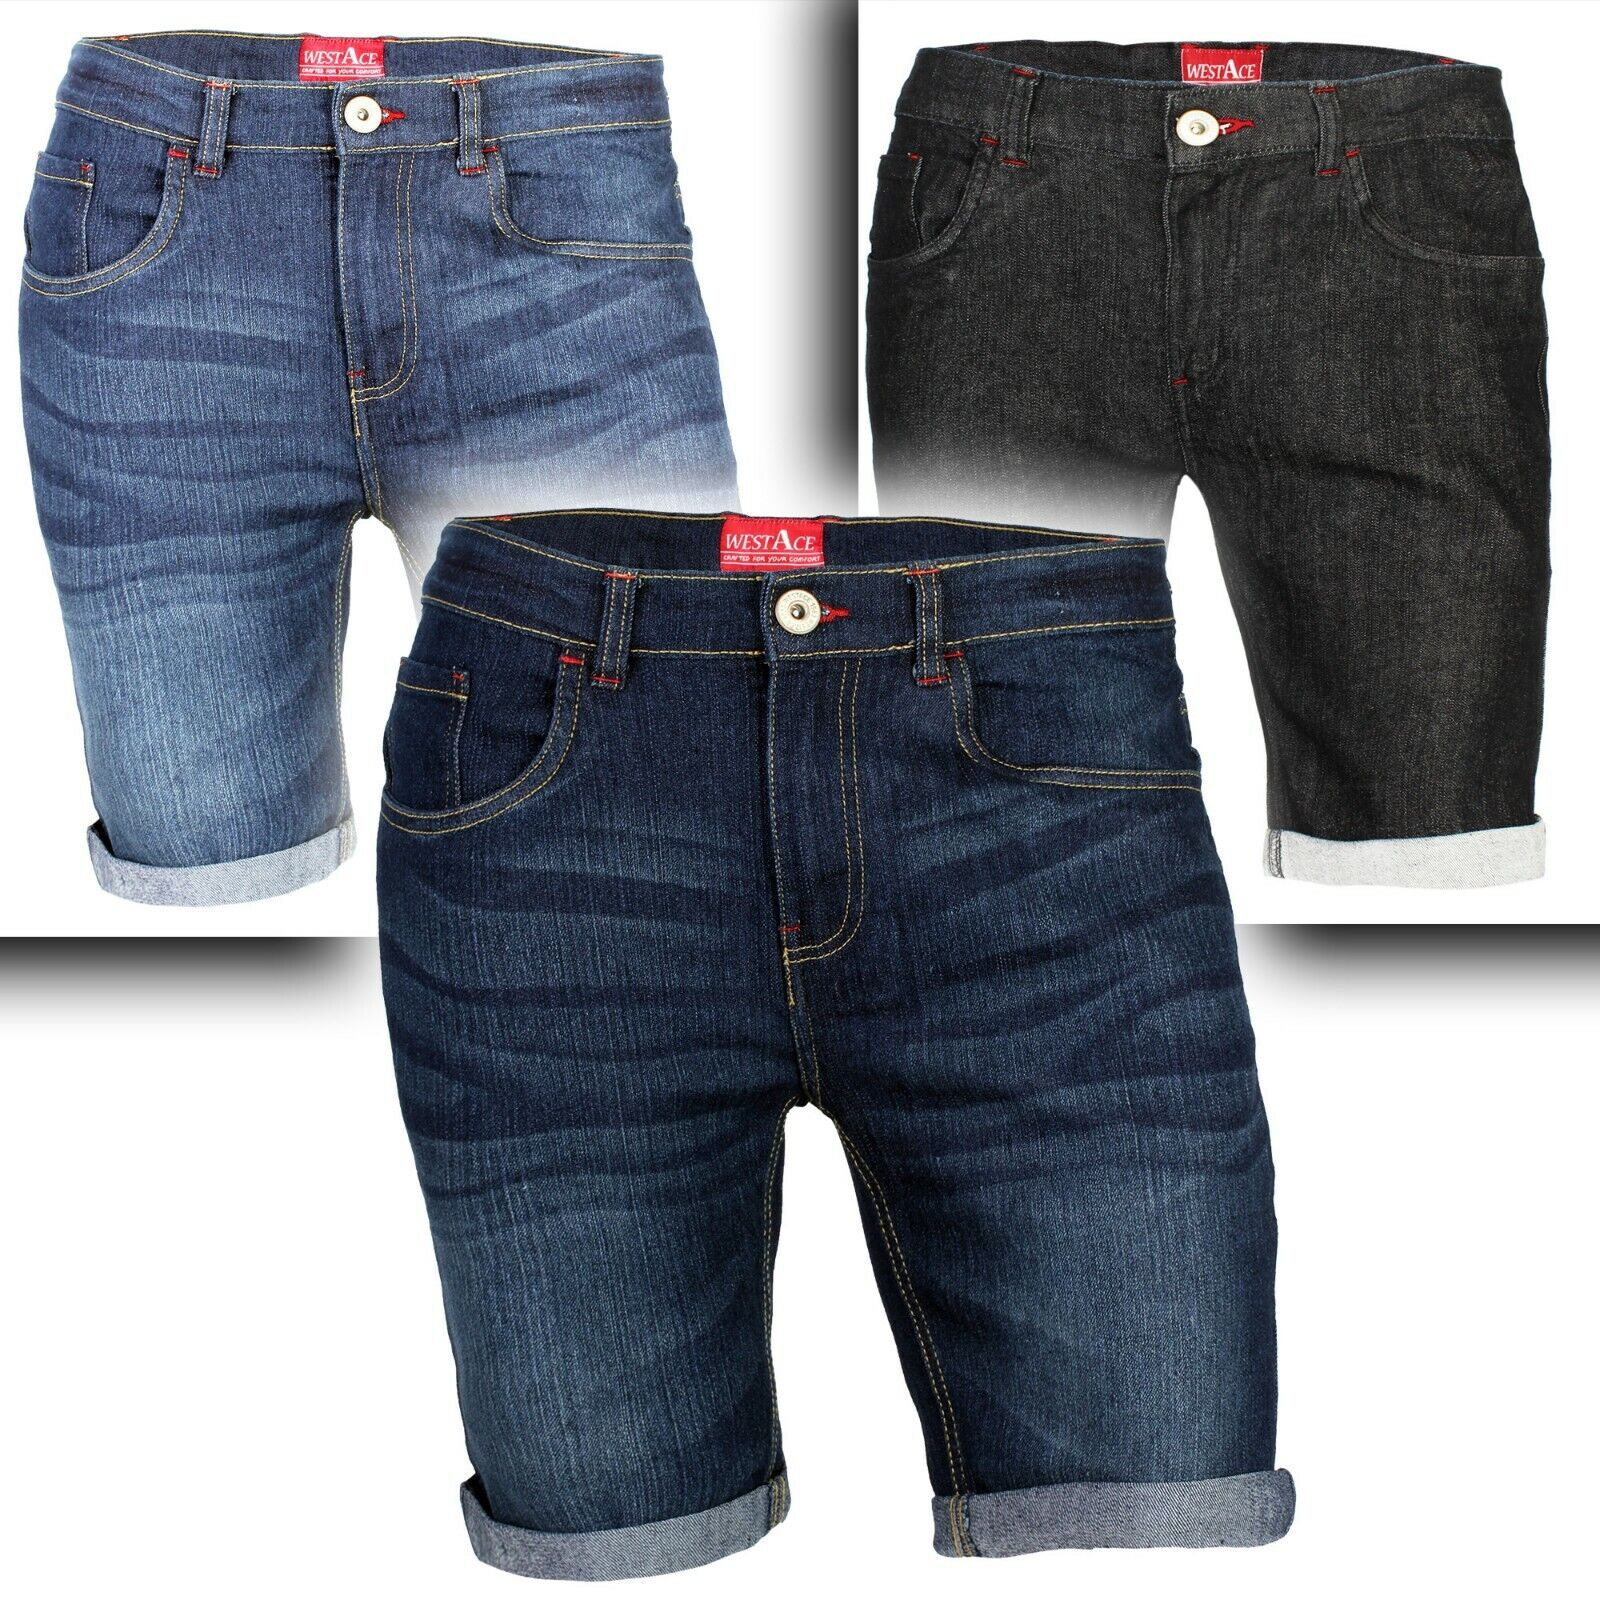 Men's Denim Shorts Slim Fit Stretch Chino Flat Front Jeans Half Pants Clothing, Shoes & Accessories